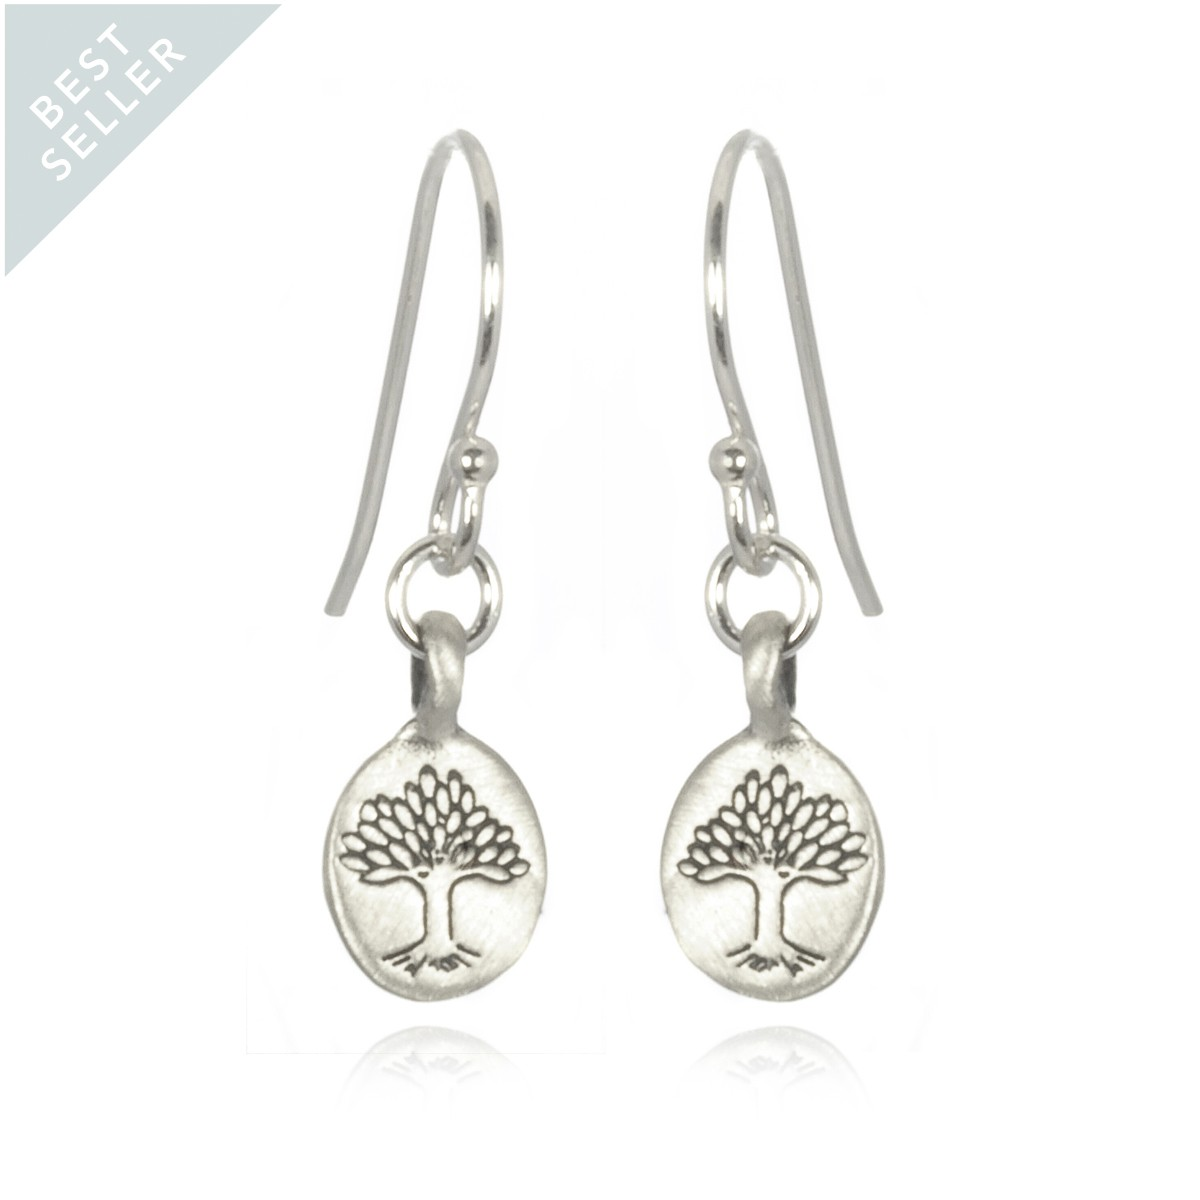 Satya Silver Tree Of Life Earrings - Nurturing Earth